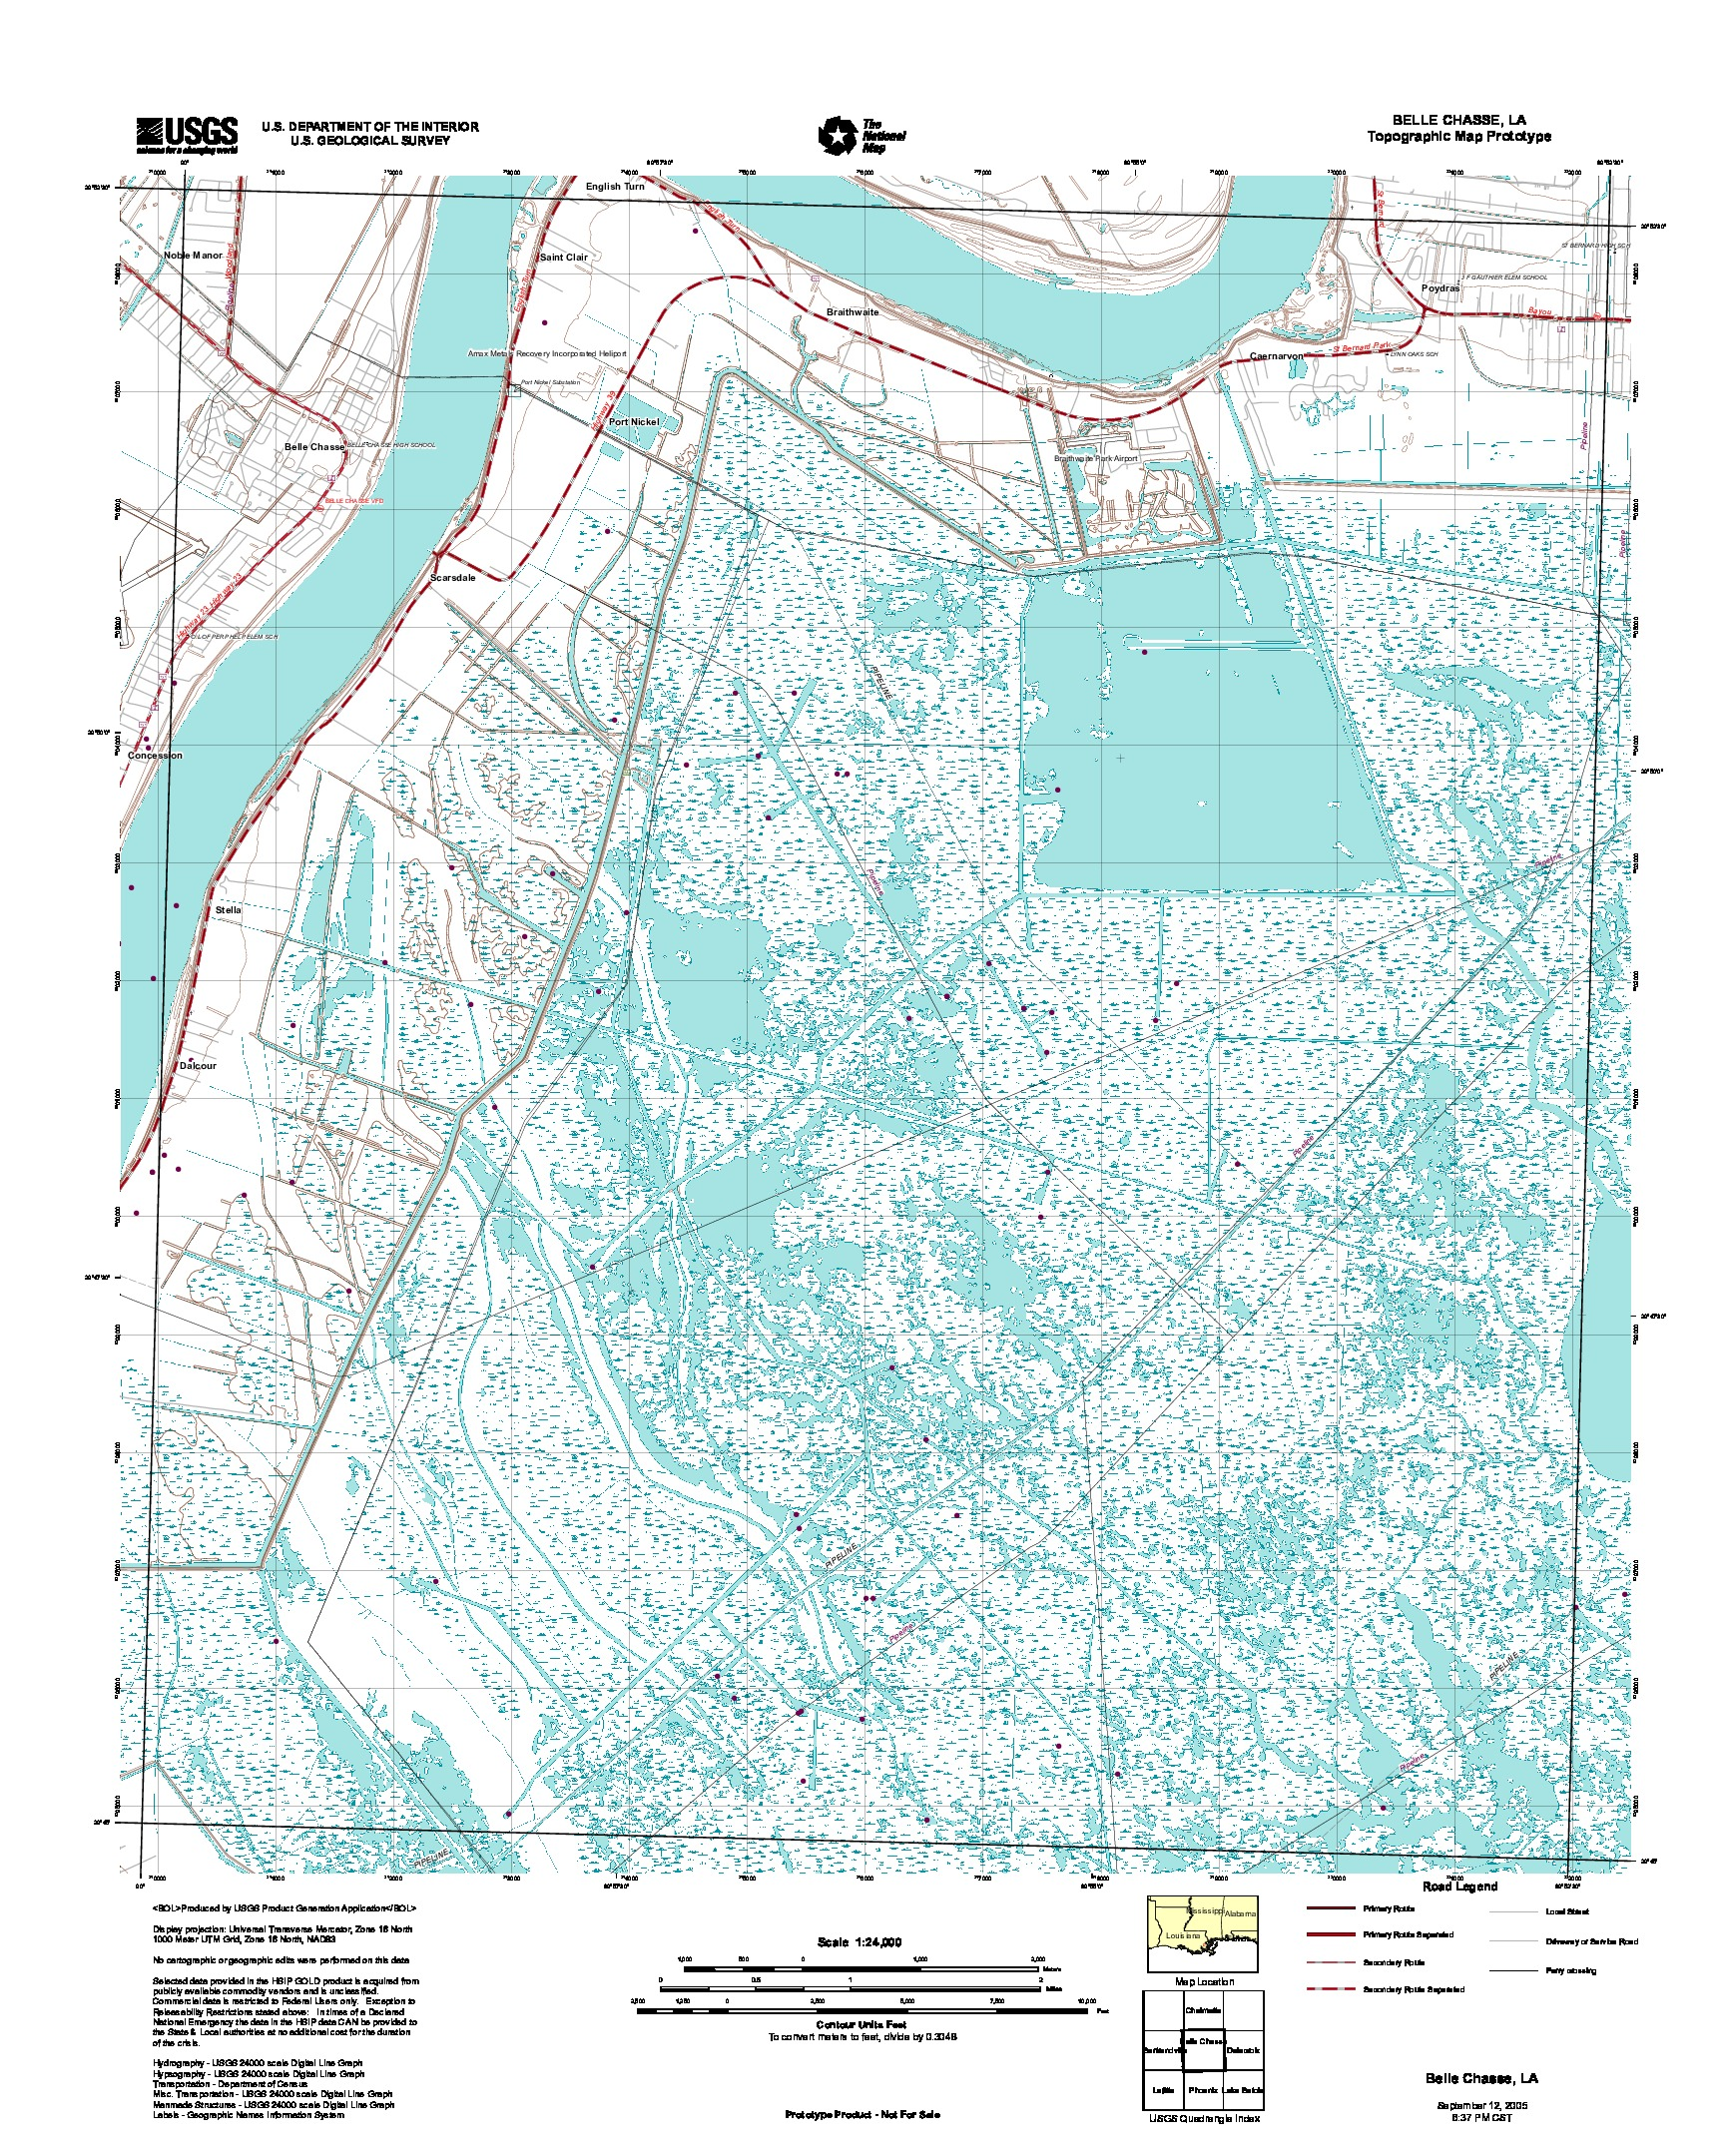 Belle Chasse, Topographic Map Prototype, Louisiana, United States, September 12, 2005